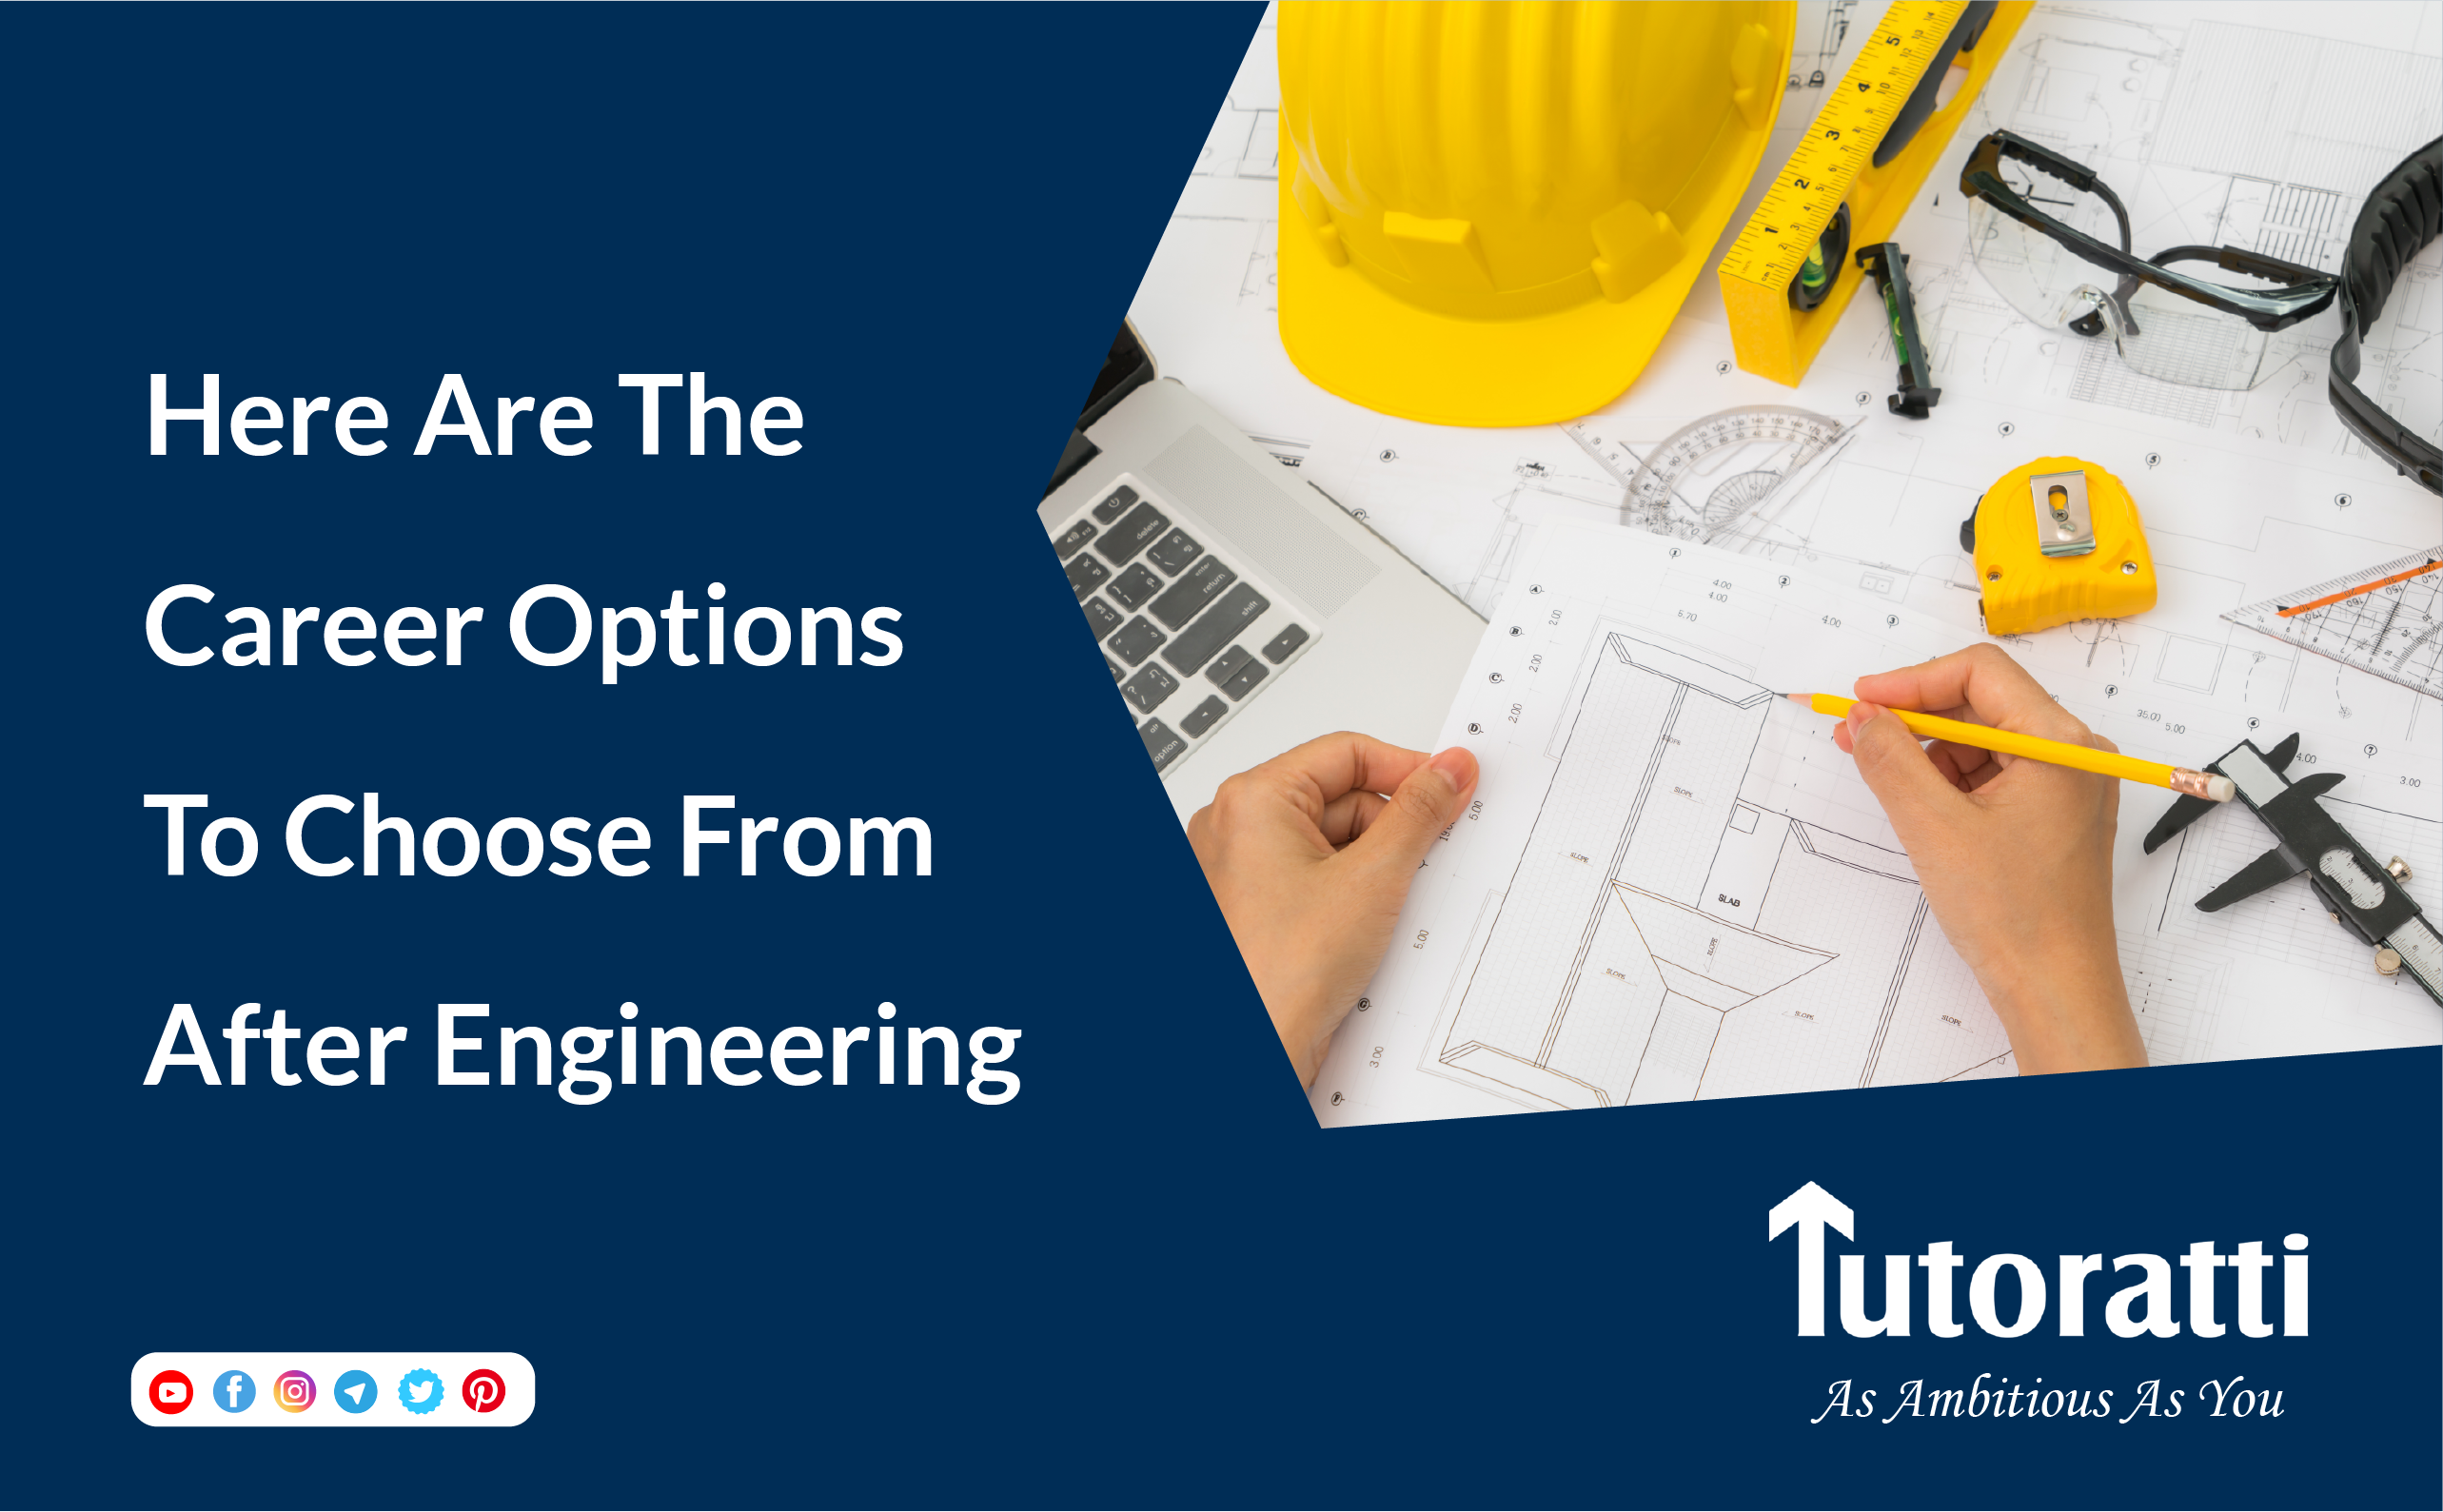 Here Are The Career Options To Choose From After Engineering